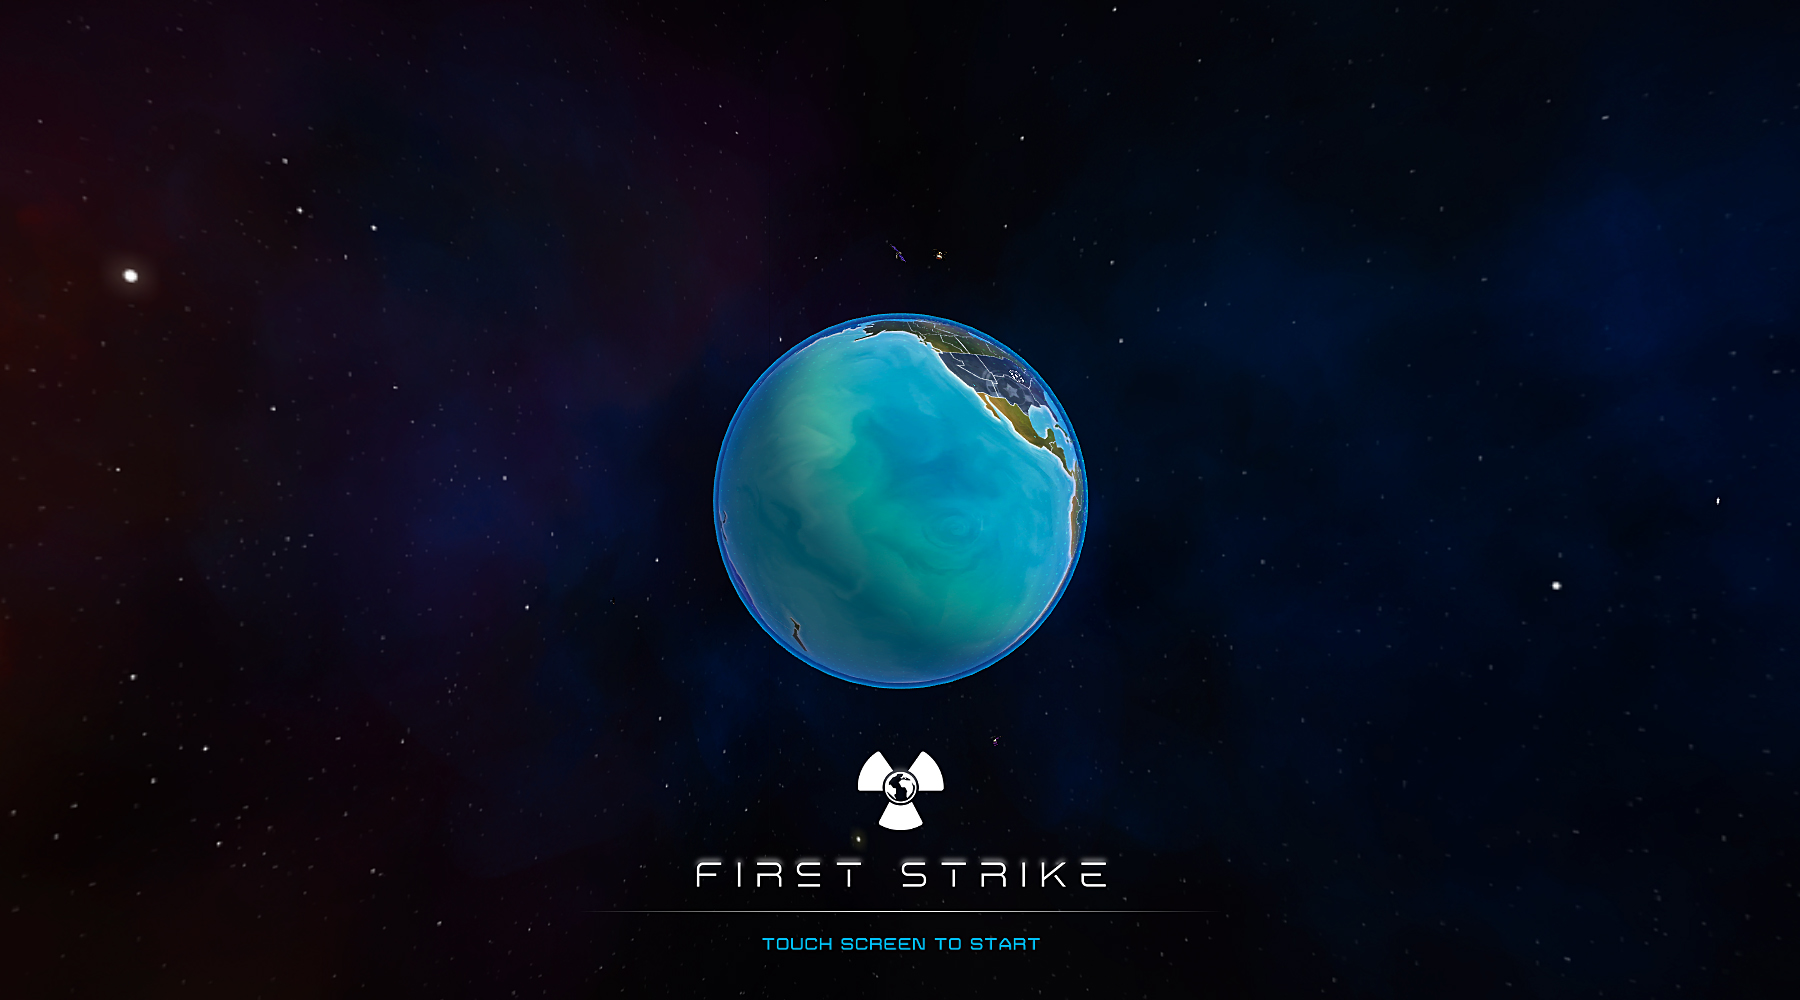 Fast-paced strategy game First Strike will make nuclear war fun on your tablet